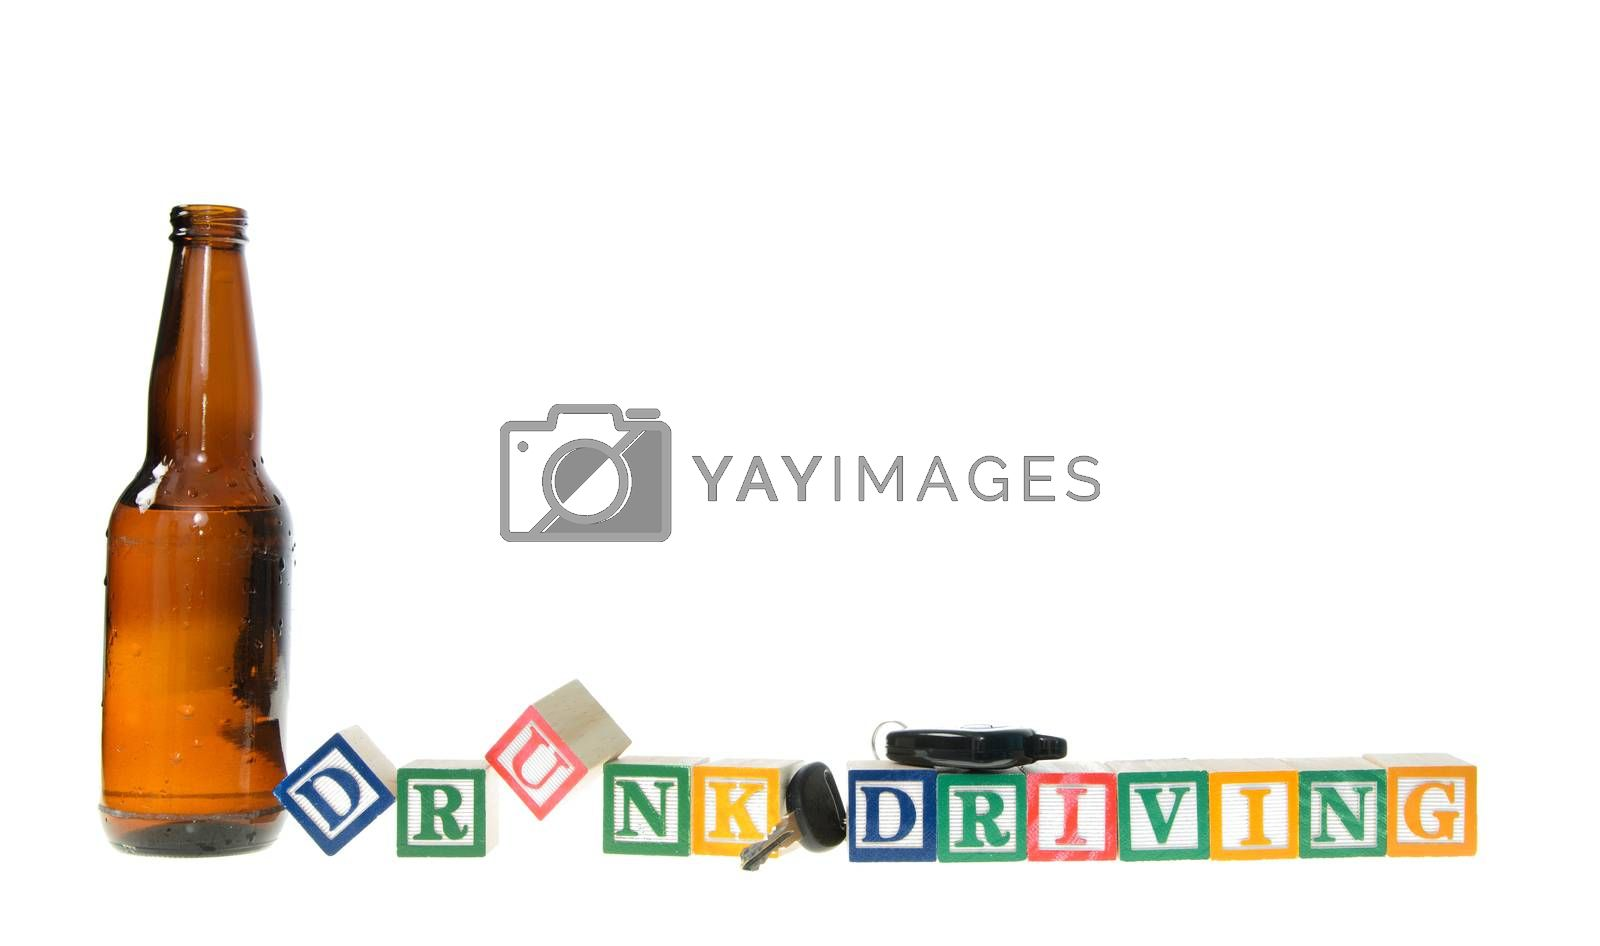 Letter blocks spelling drunk driving with keys and a beer bottle. Isolated on a white background.